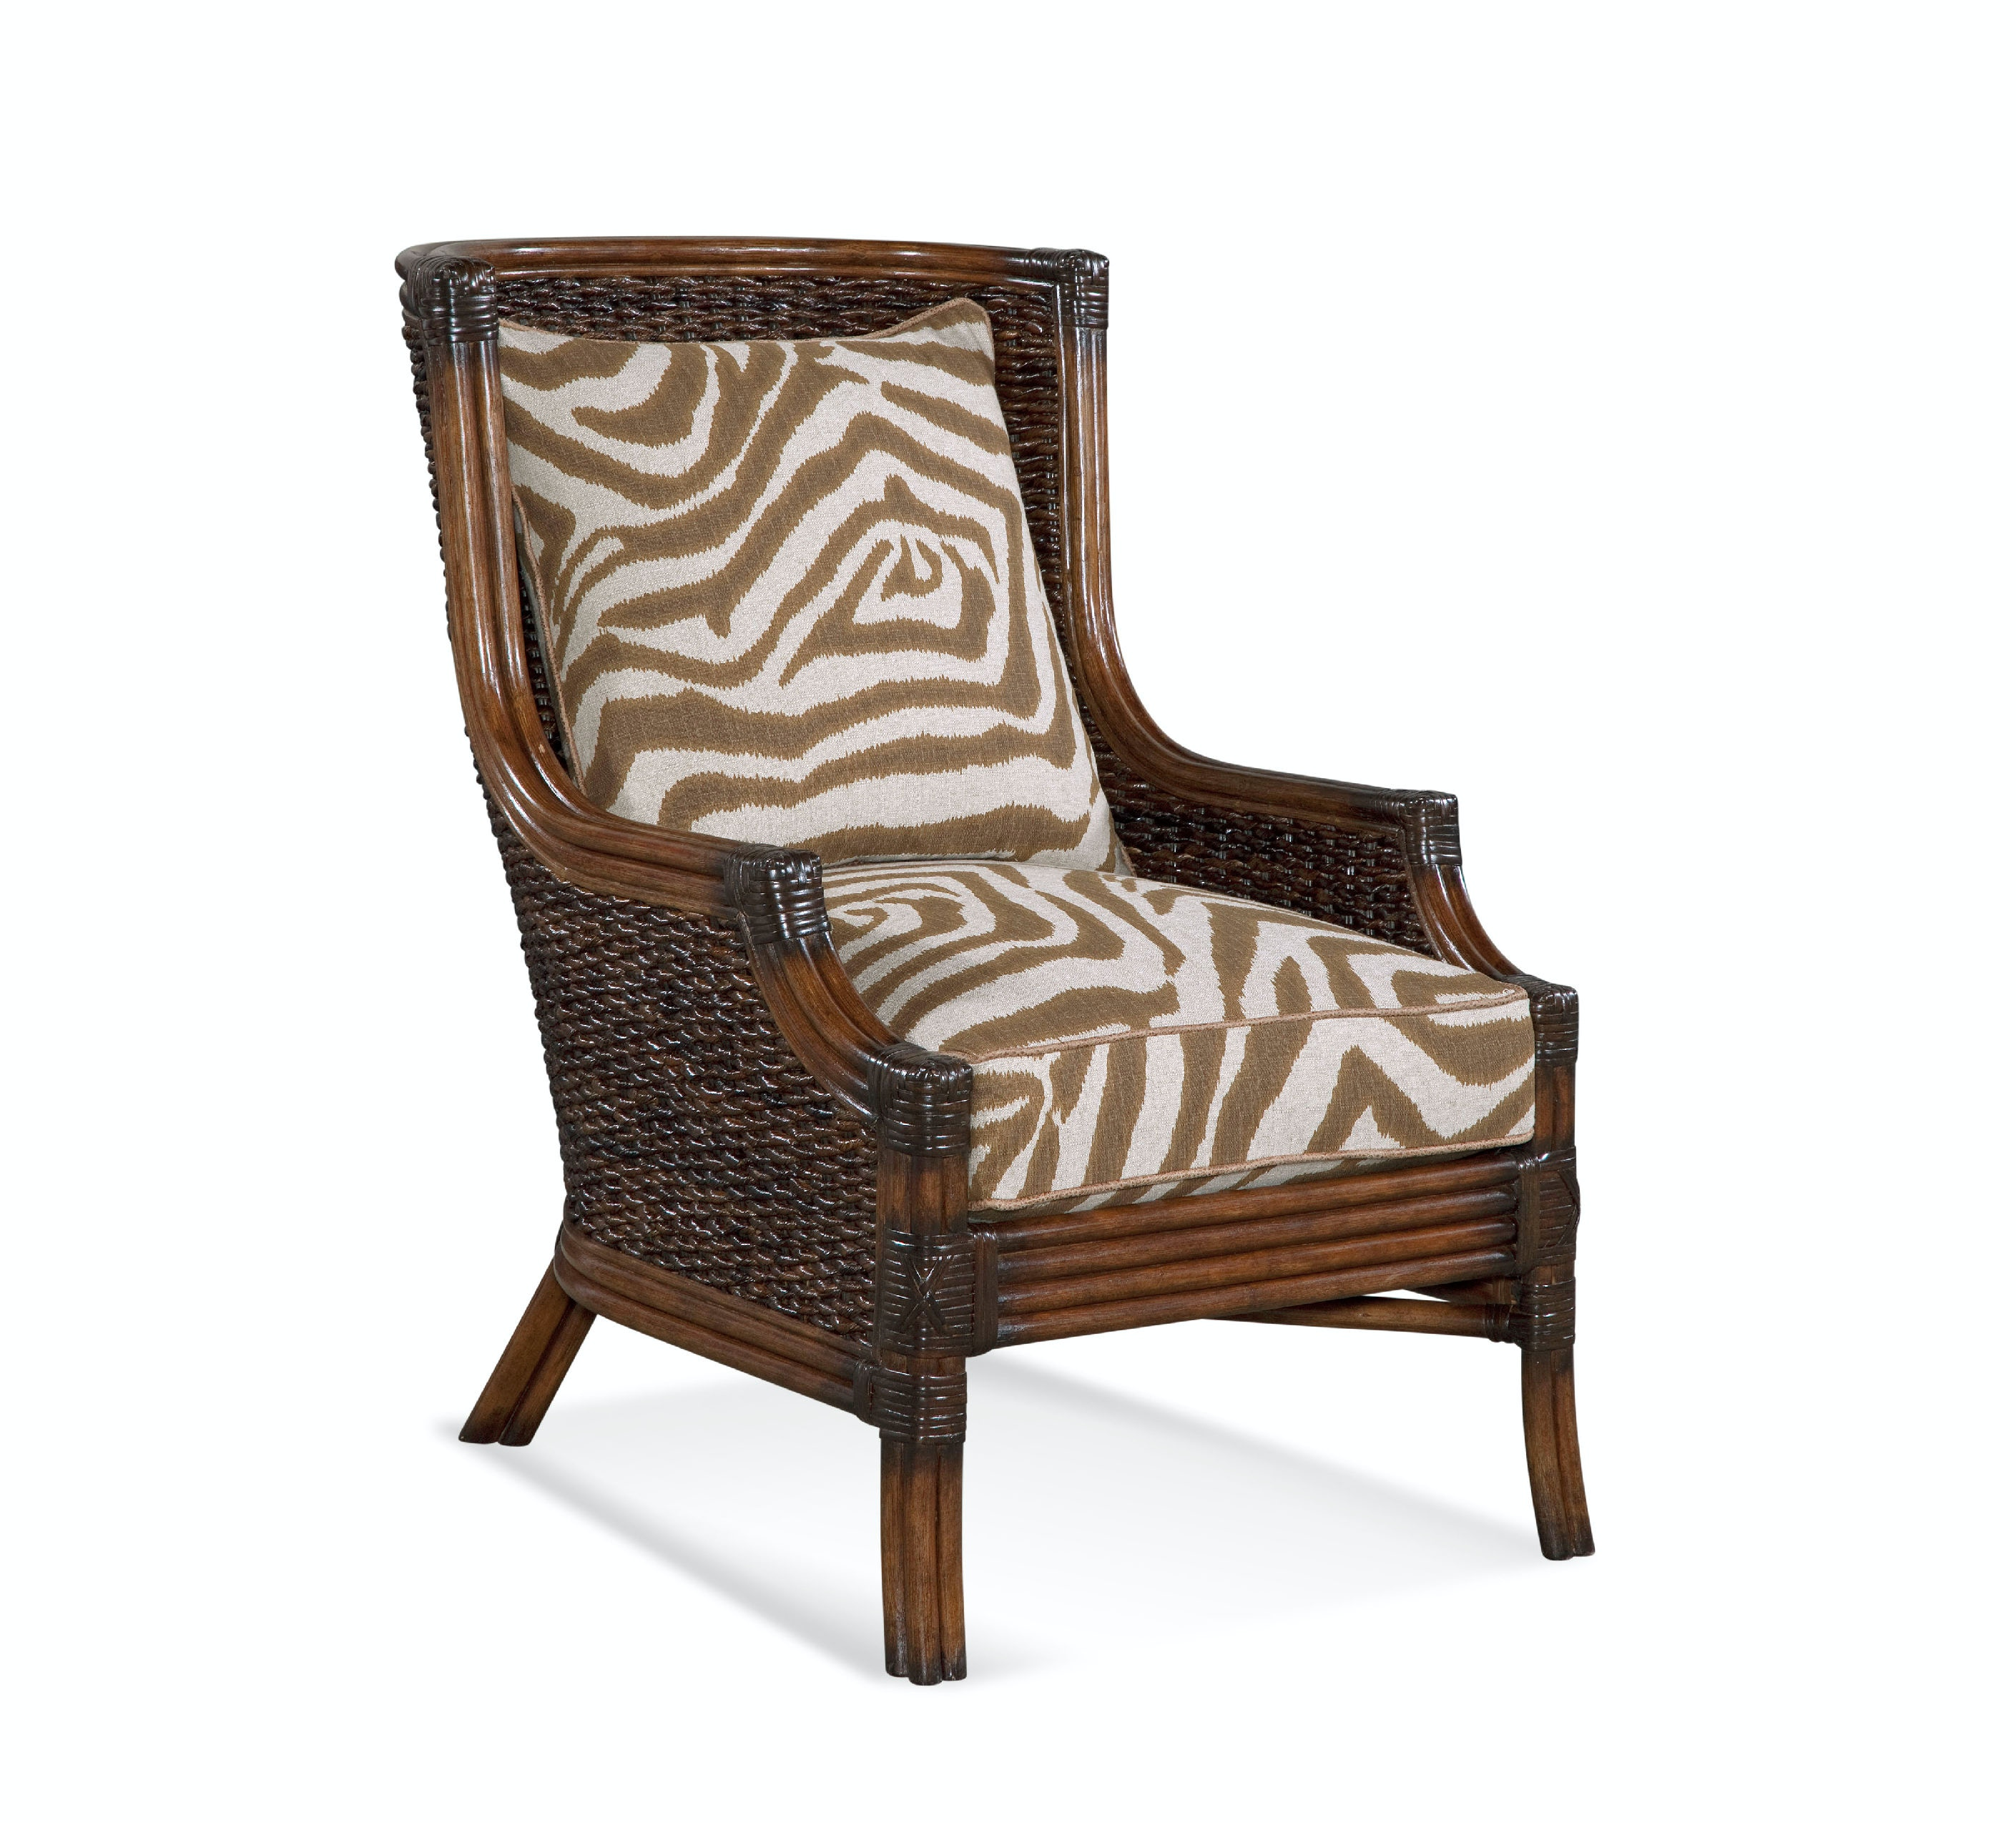 Braxton Culler Living Room Coconut Grove Wing Chair 2920